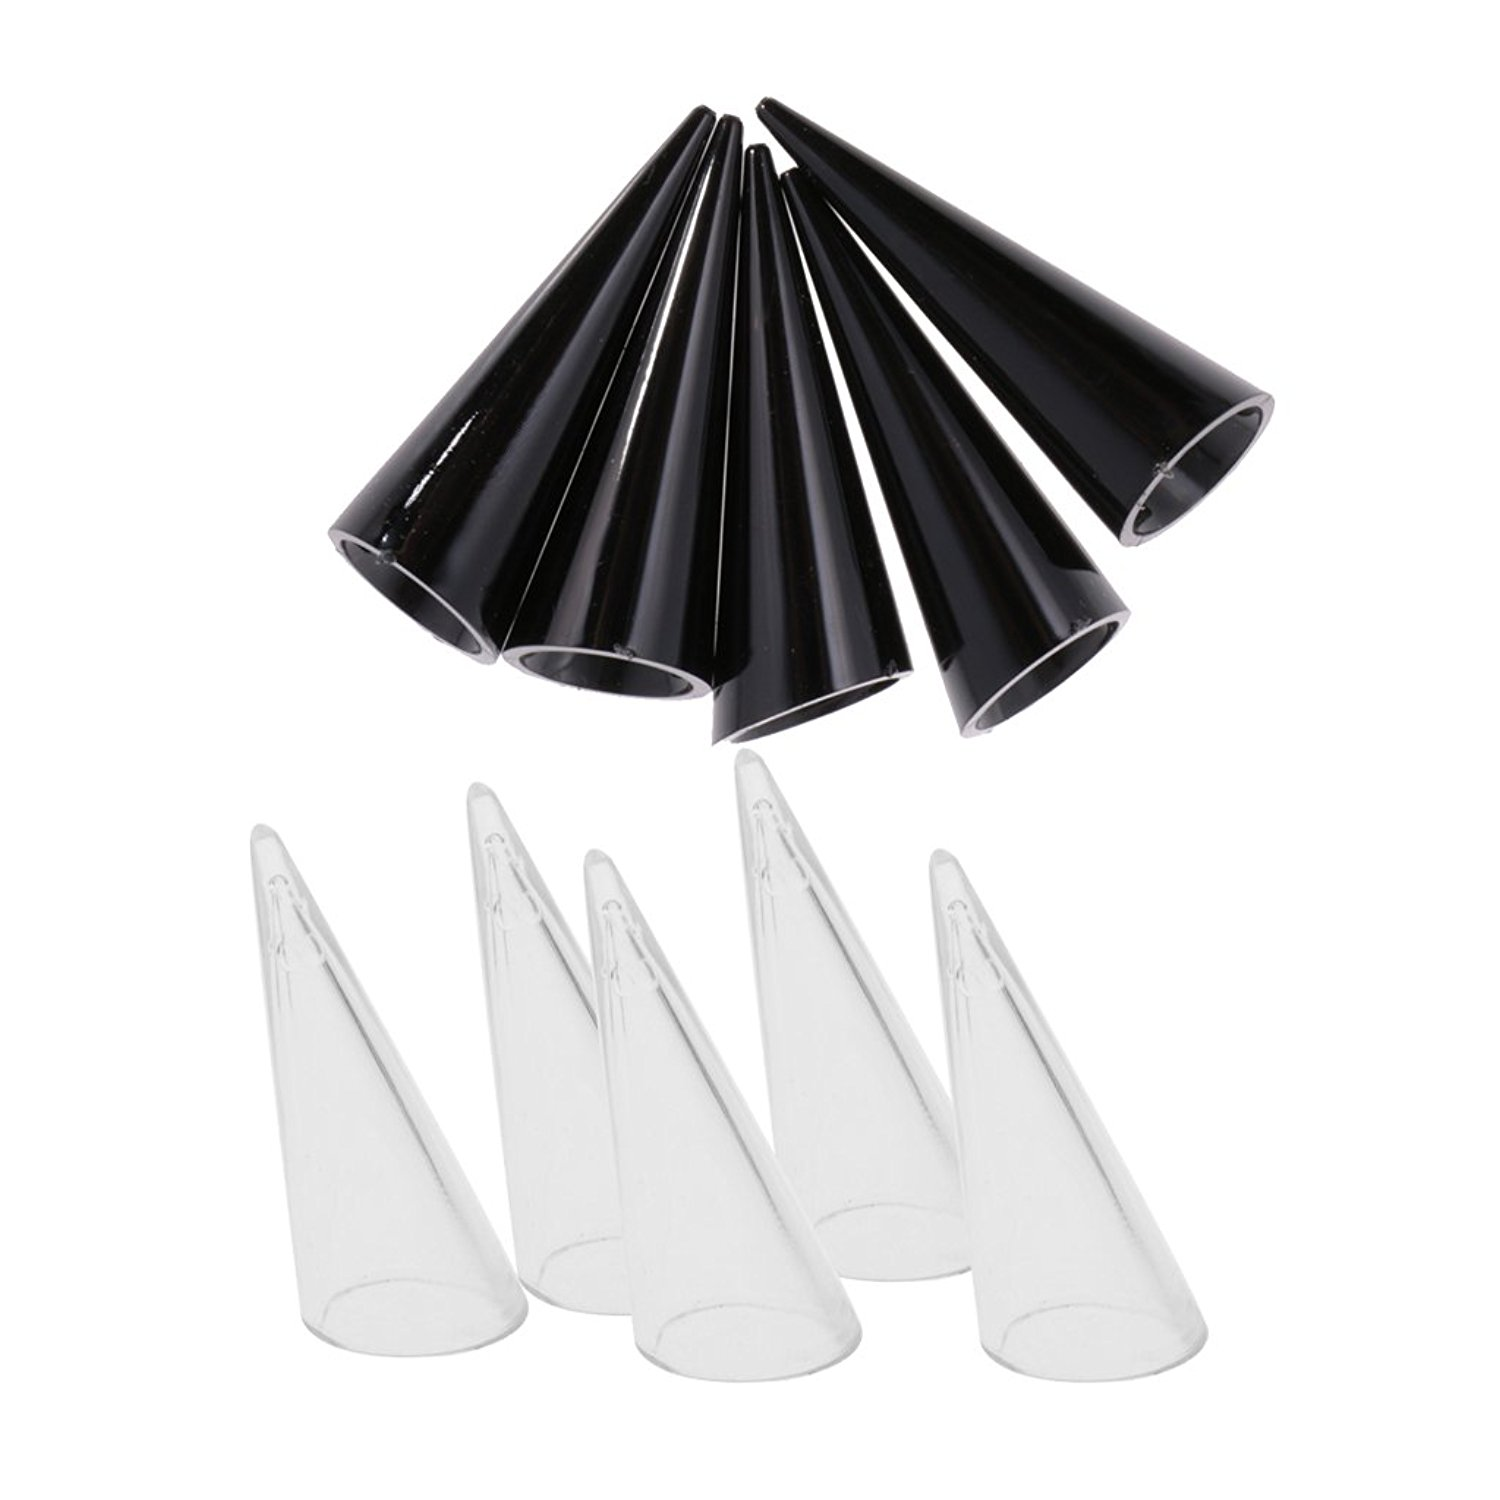 Dovewill 10Pcs Black Clear Plastic Jewelry Display Stand Finger Cone Ring Holder Rack